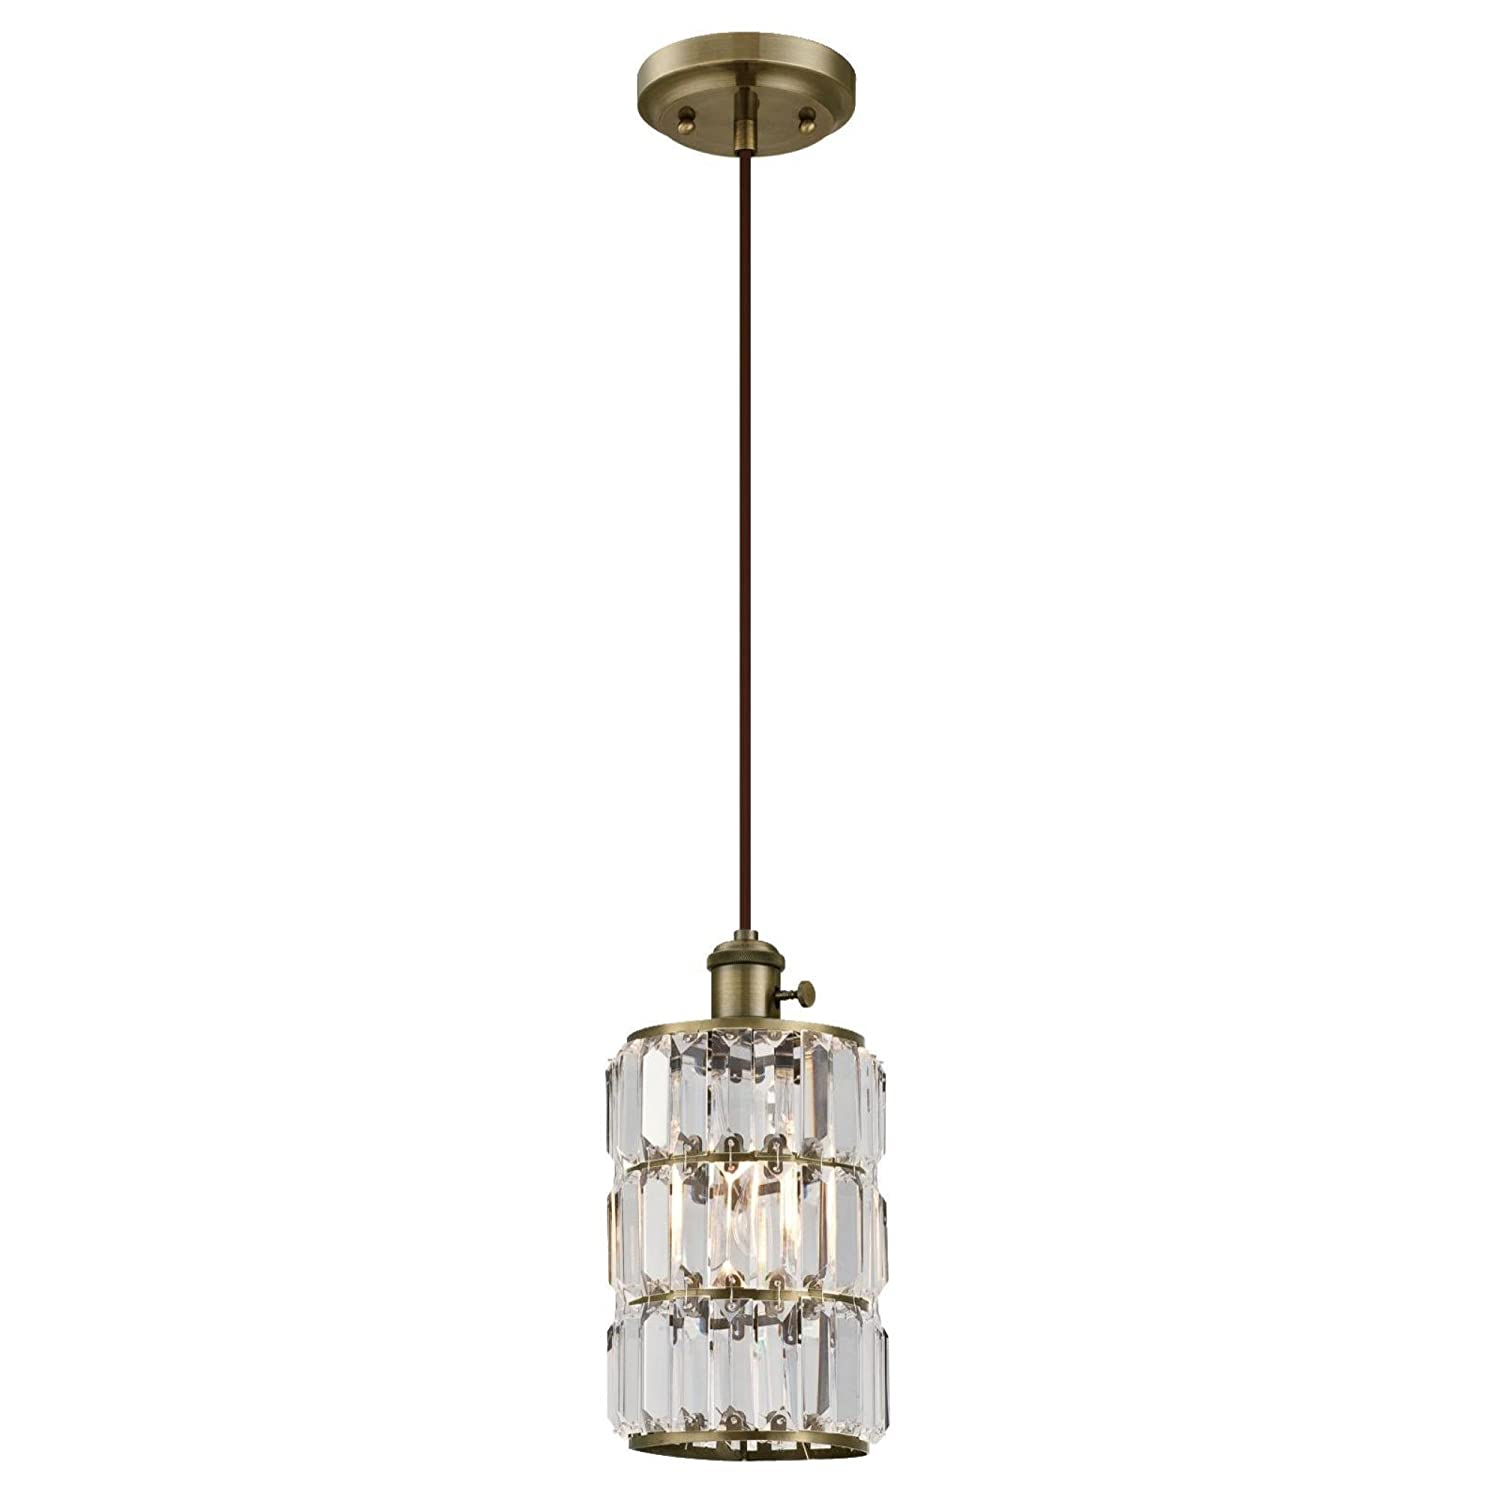 Westinghouse Lighting 6337100 Sophie One-Light Indoor Mini Pendant with On//Off Turn Knob Antique Brass Finish and Crystal Prism Glass